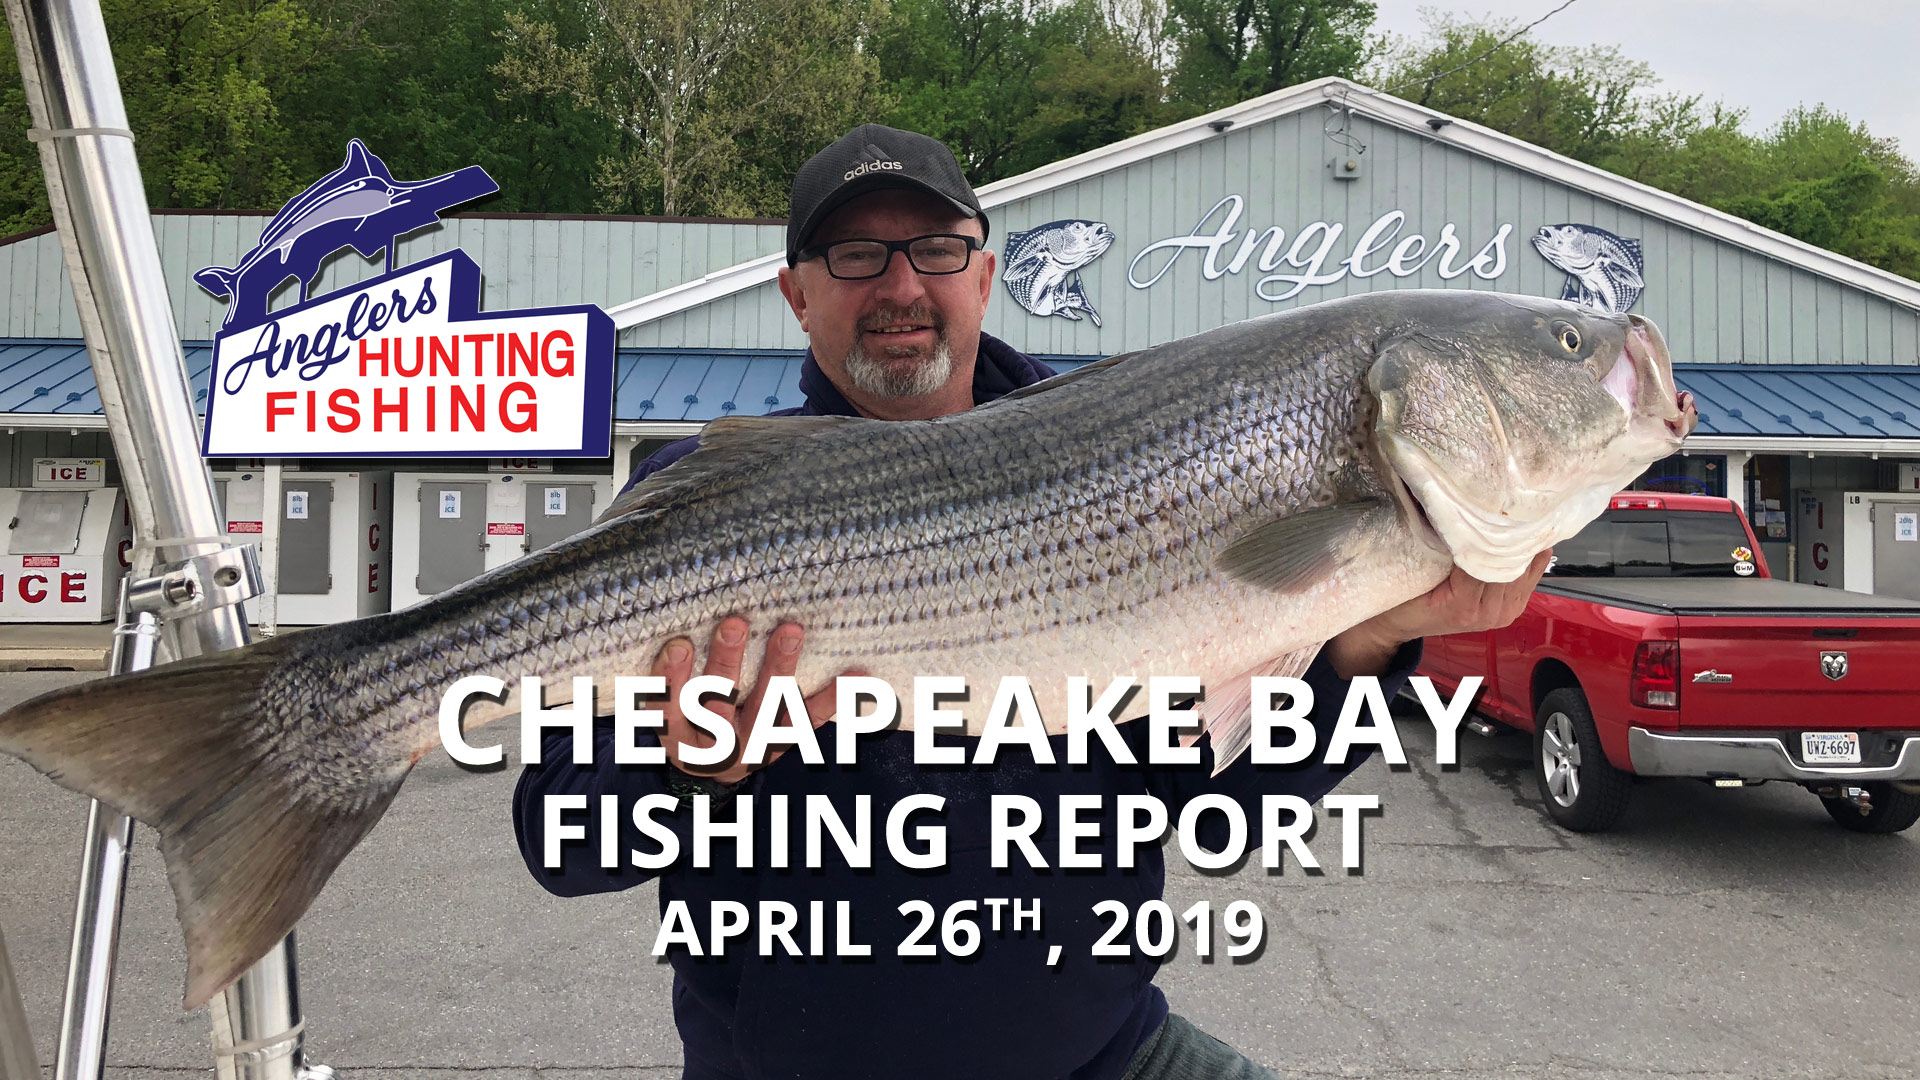 Chesapeake Bay Fishing Report - April 26th, 2019